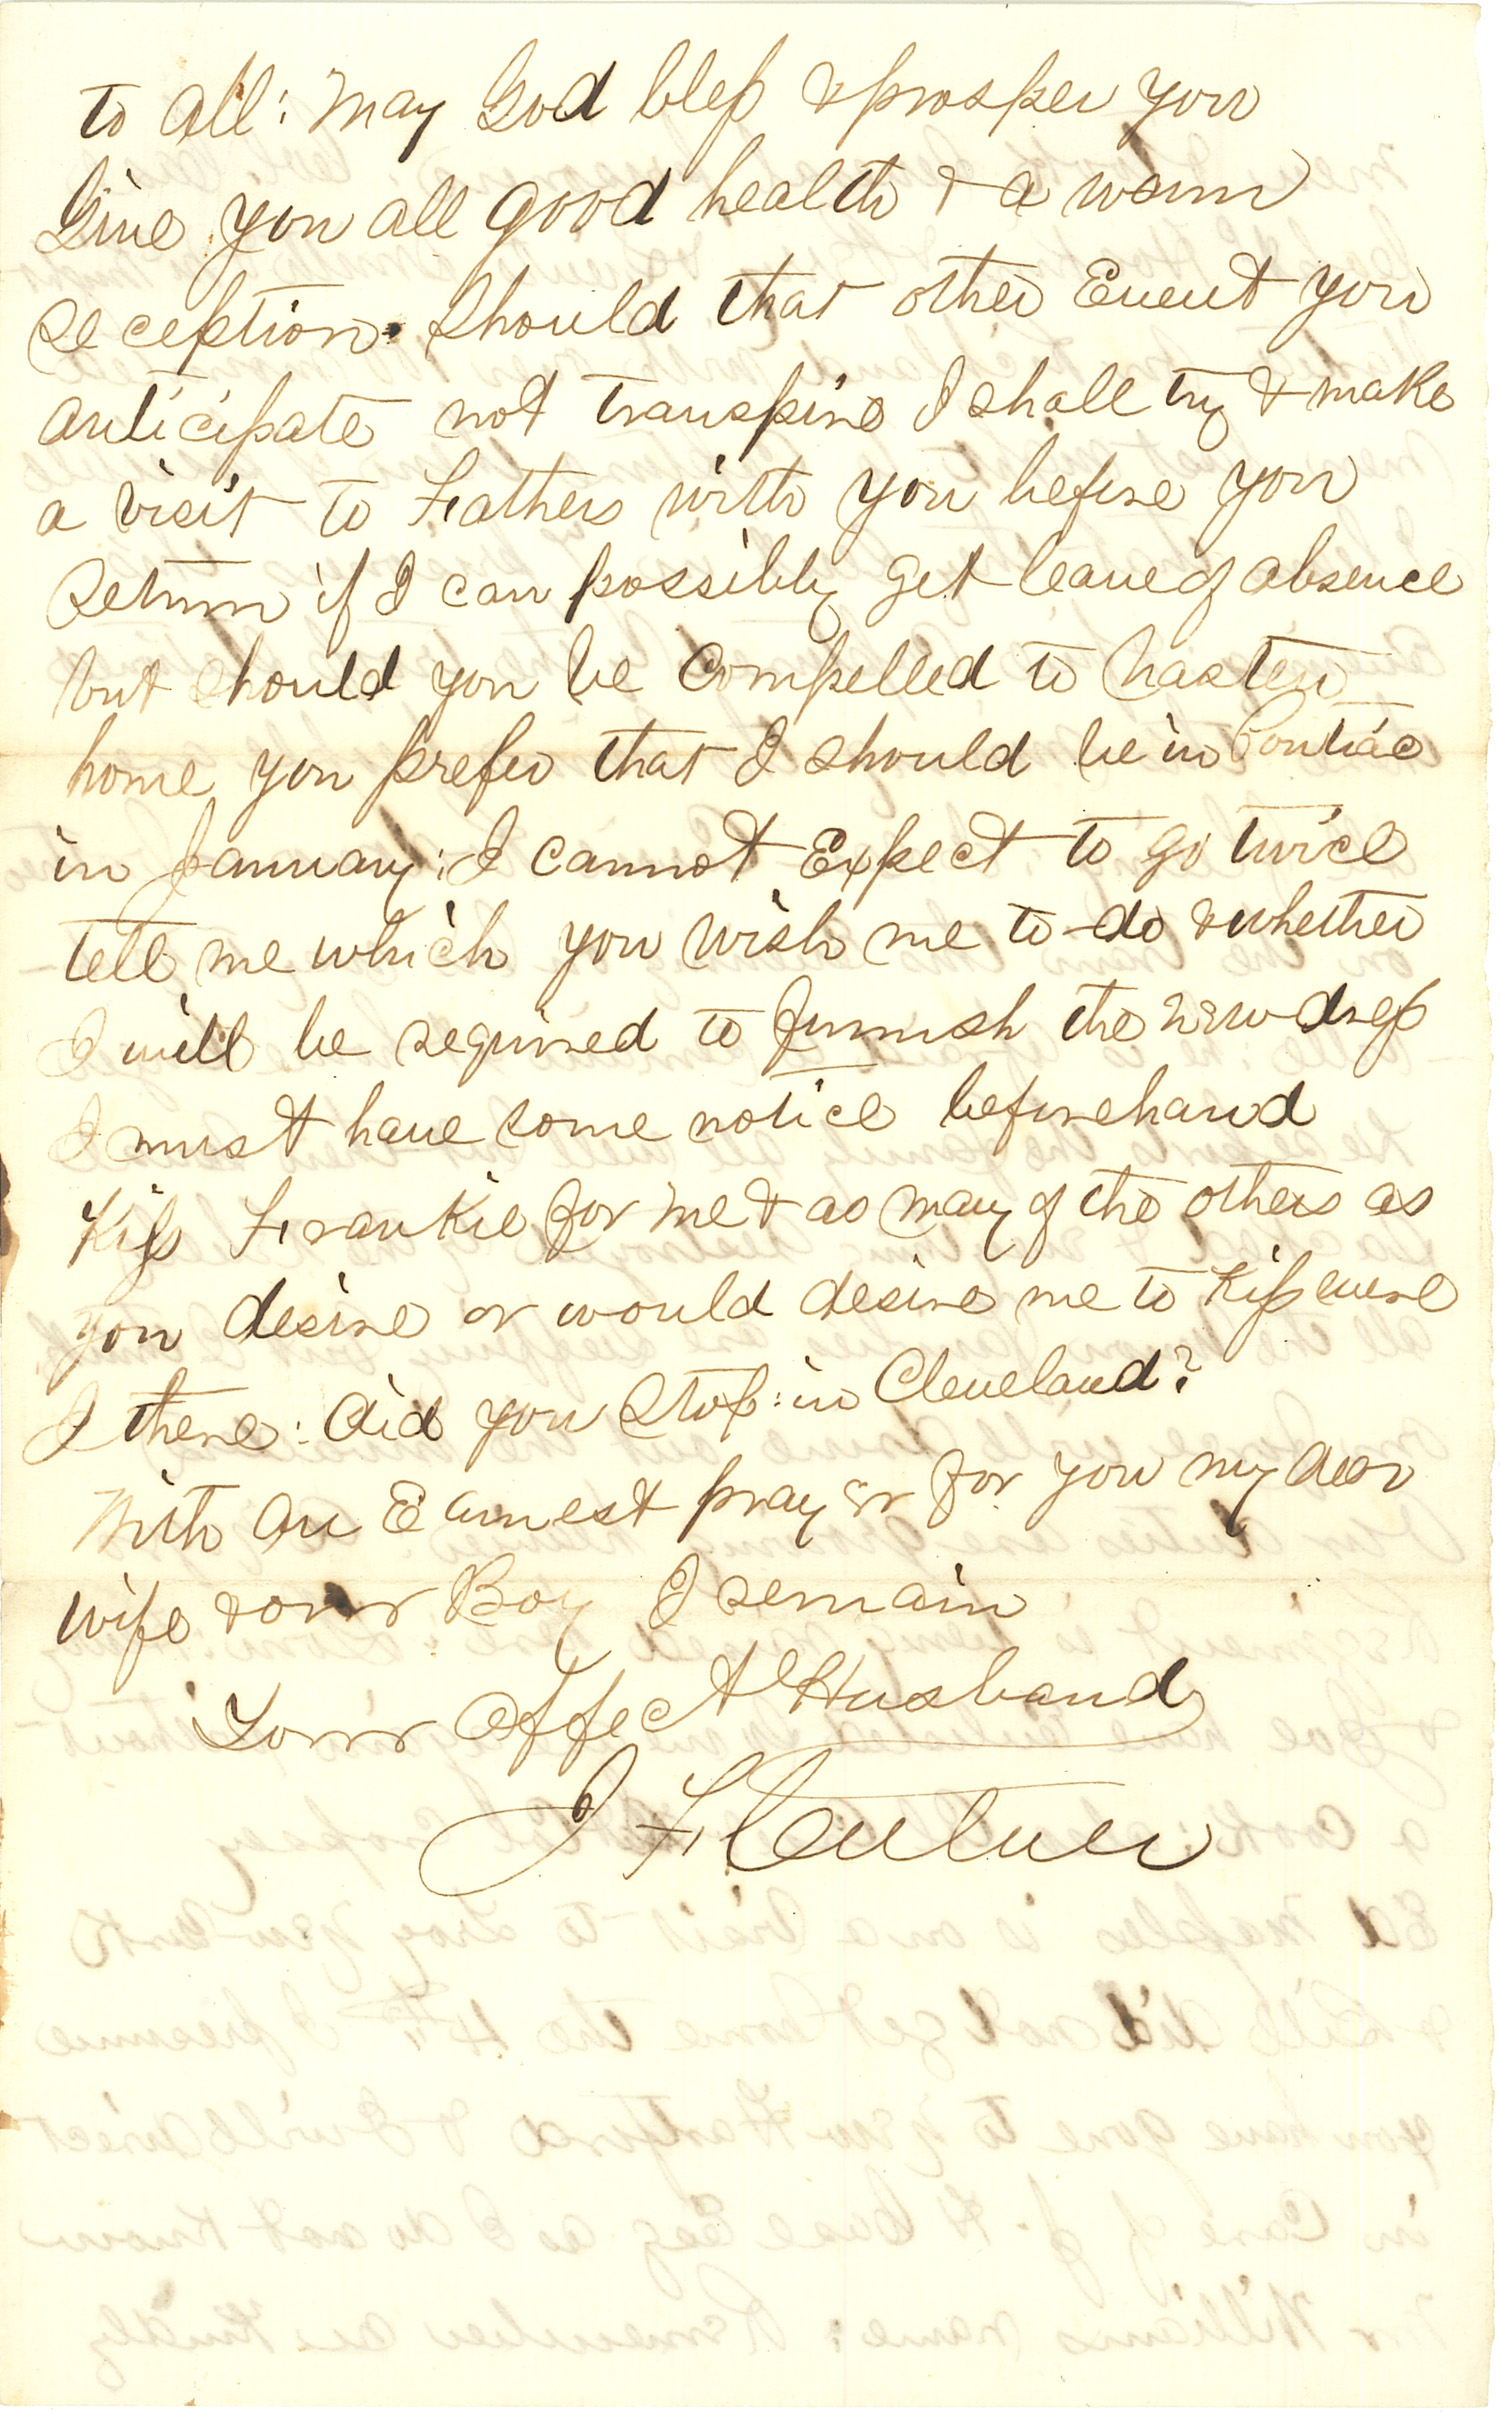 Joseph Culver Letter, July 2, 1863, Page 6